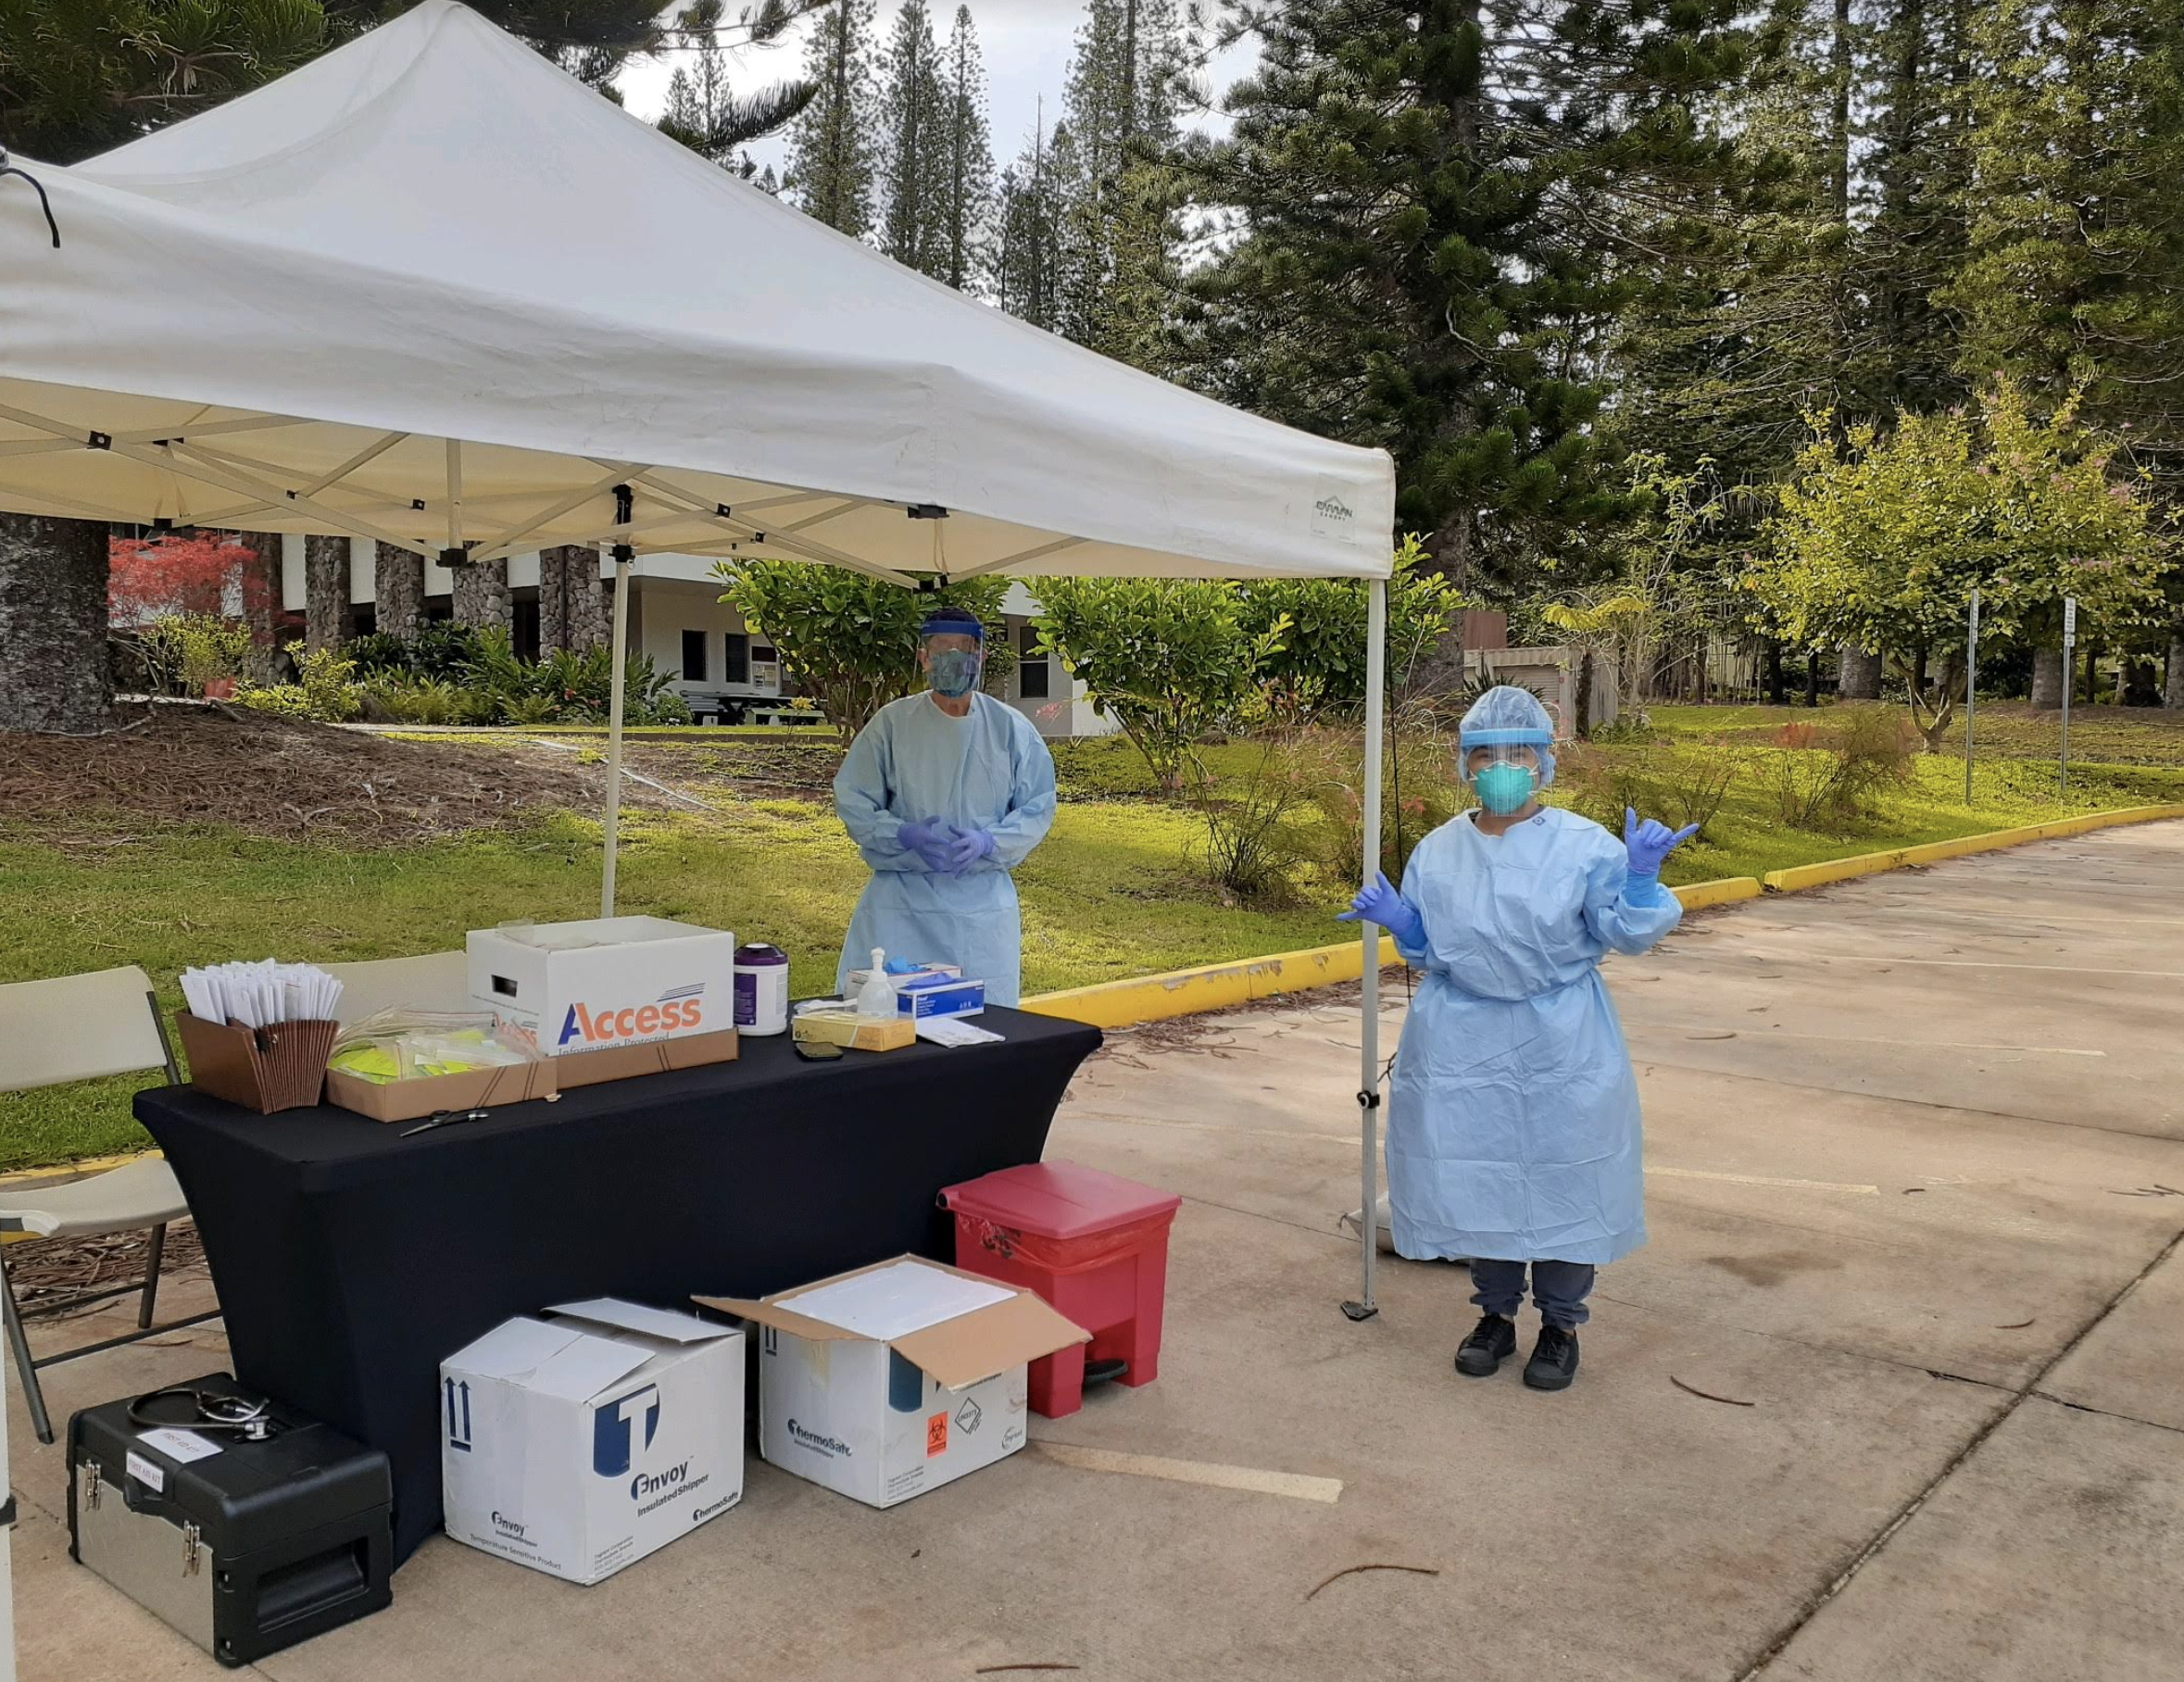 100 People Tested During COVID-19 Drive-Through on Lāna'i